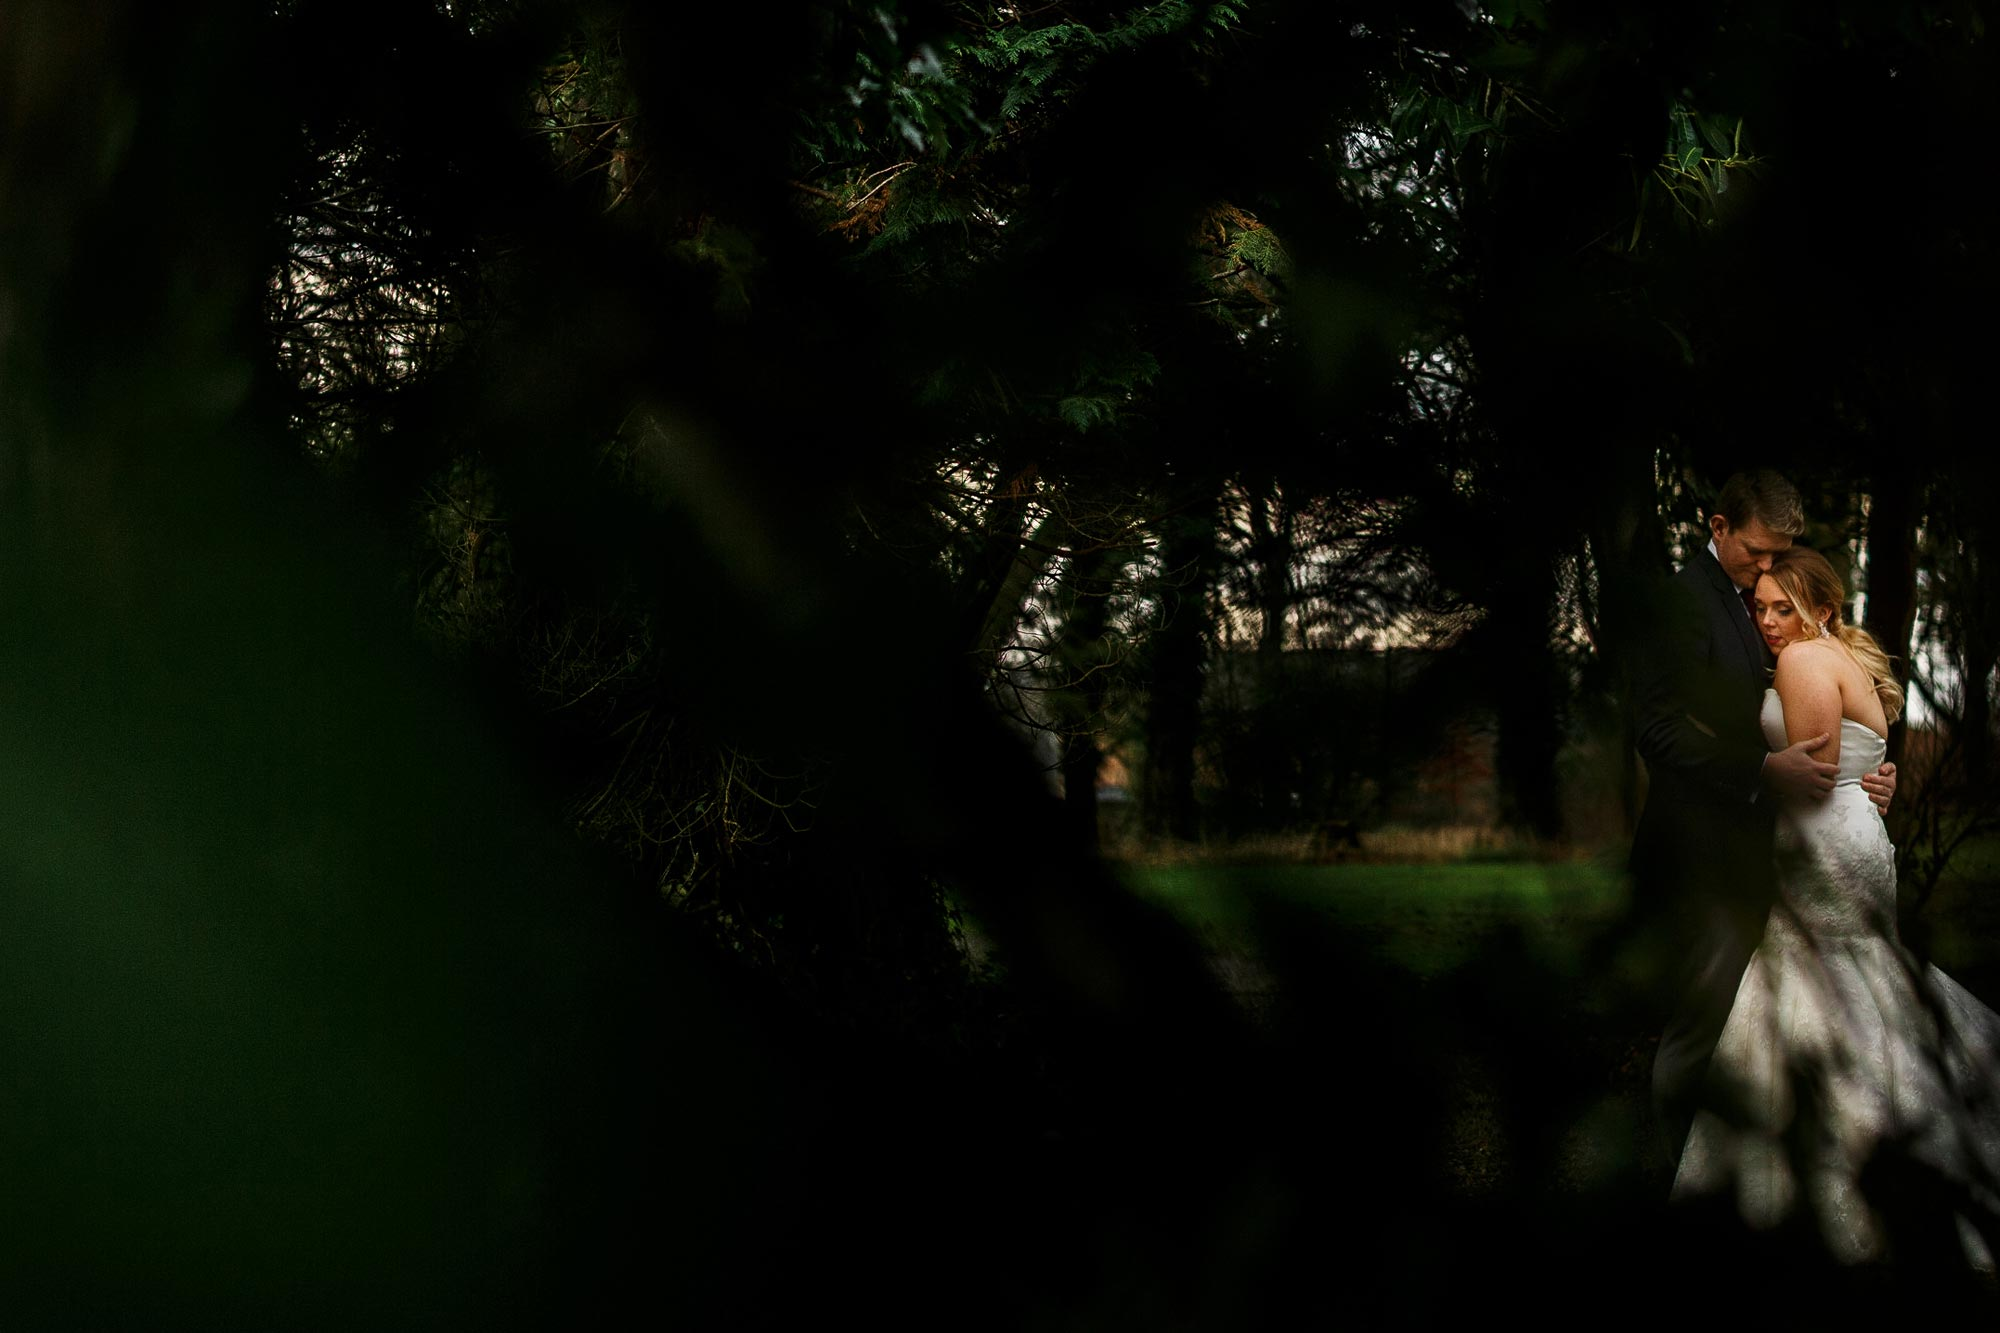 Wedding photograph of bride and groom through the trees in the gardens at Mitton Hall